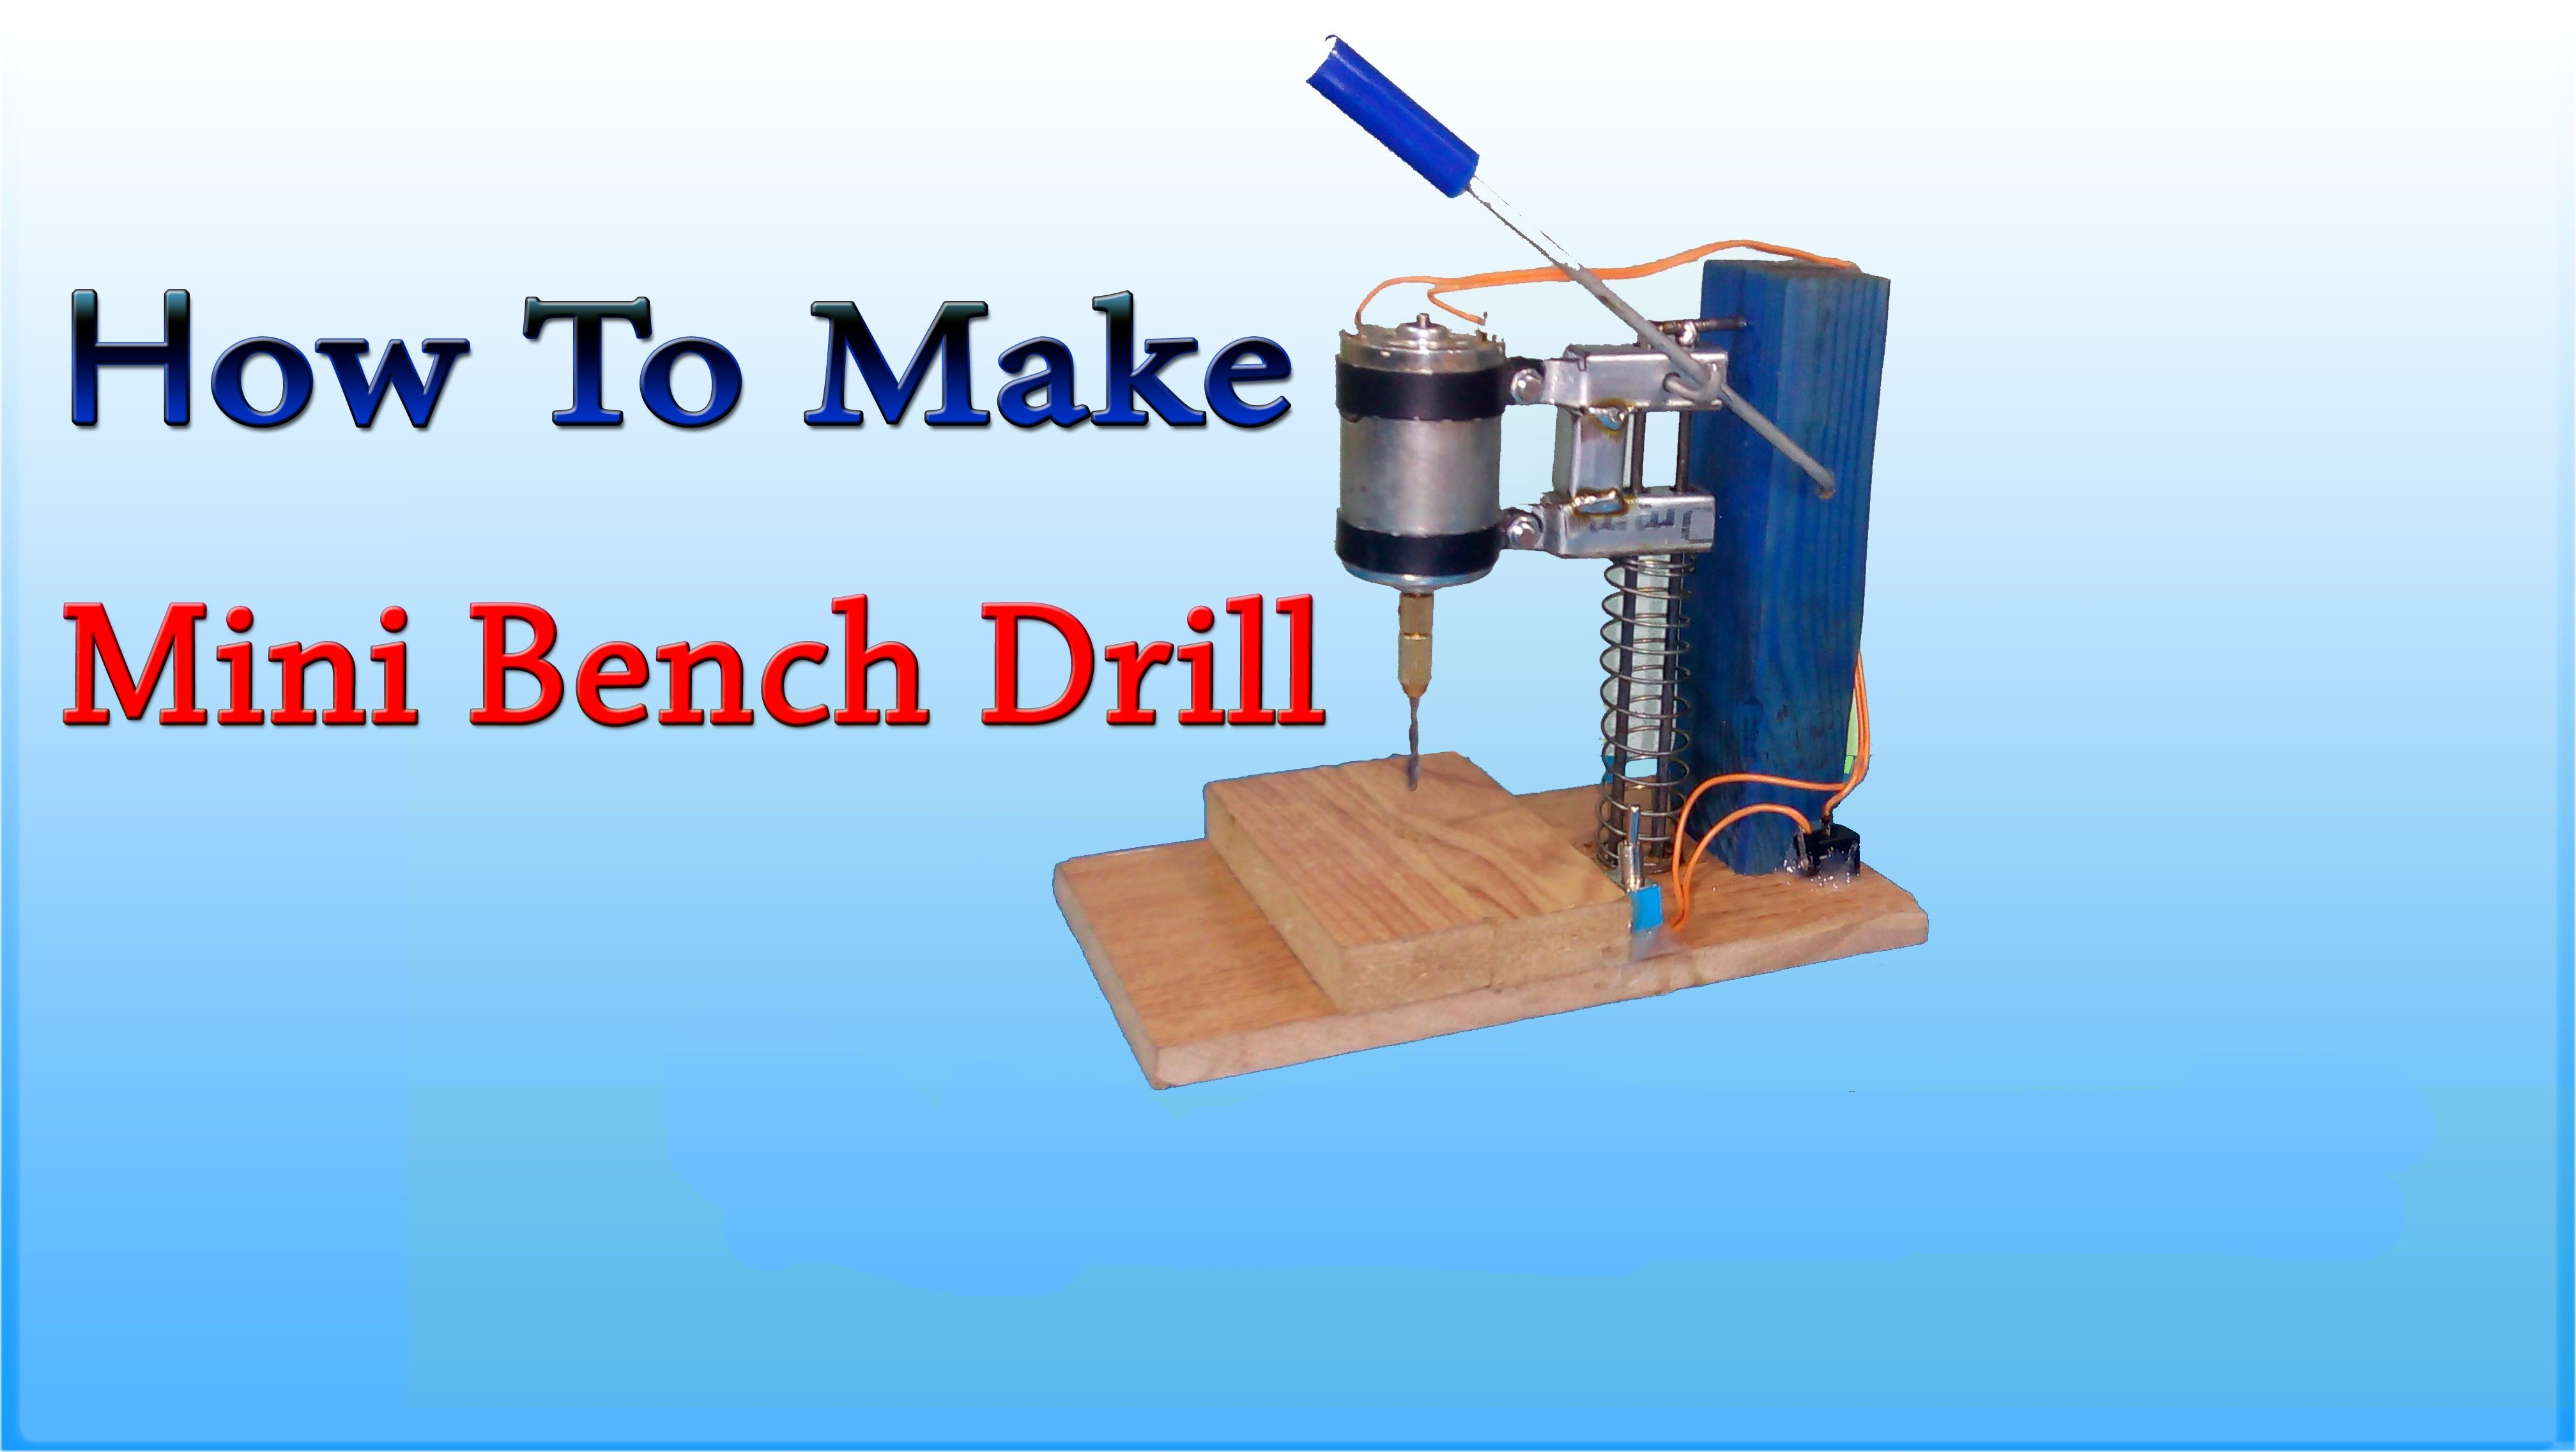 How to make mini bench drill - DIY homemade | Minis | DIY ...